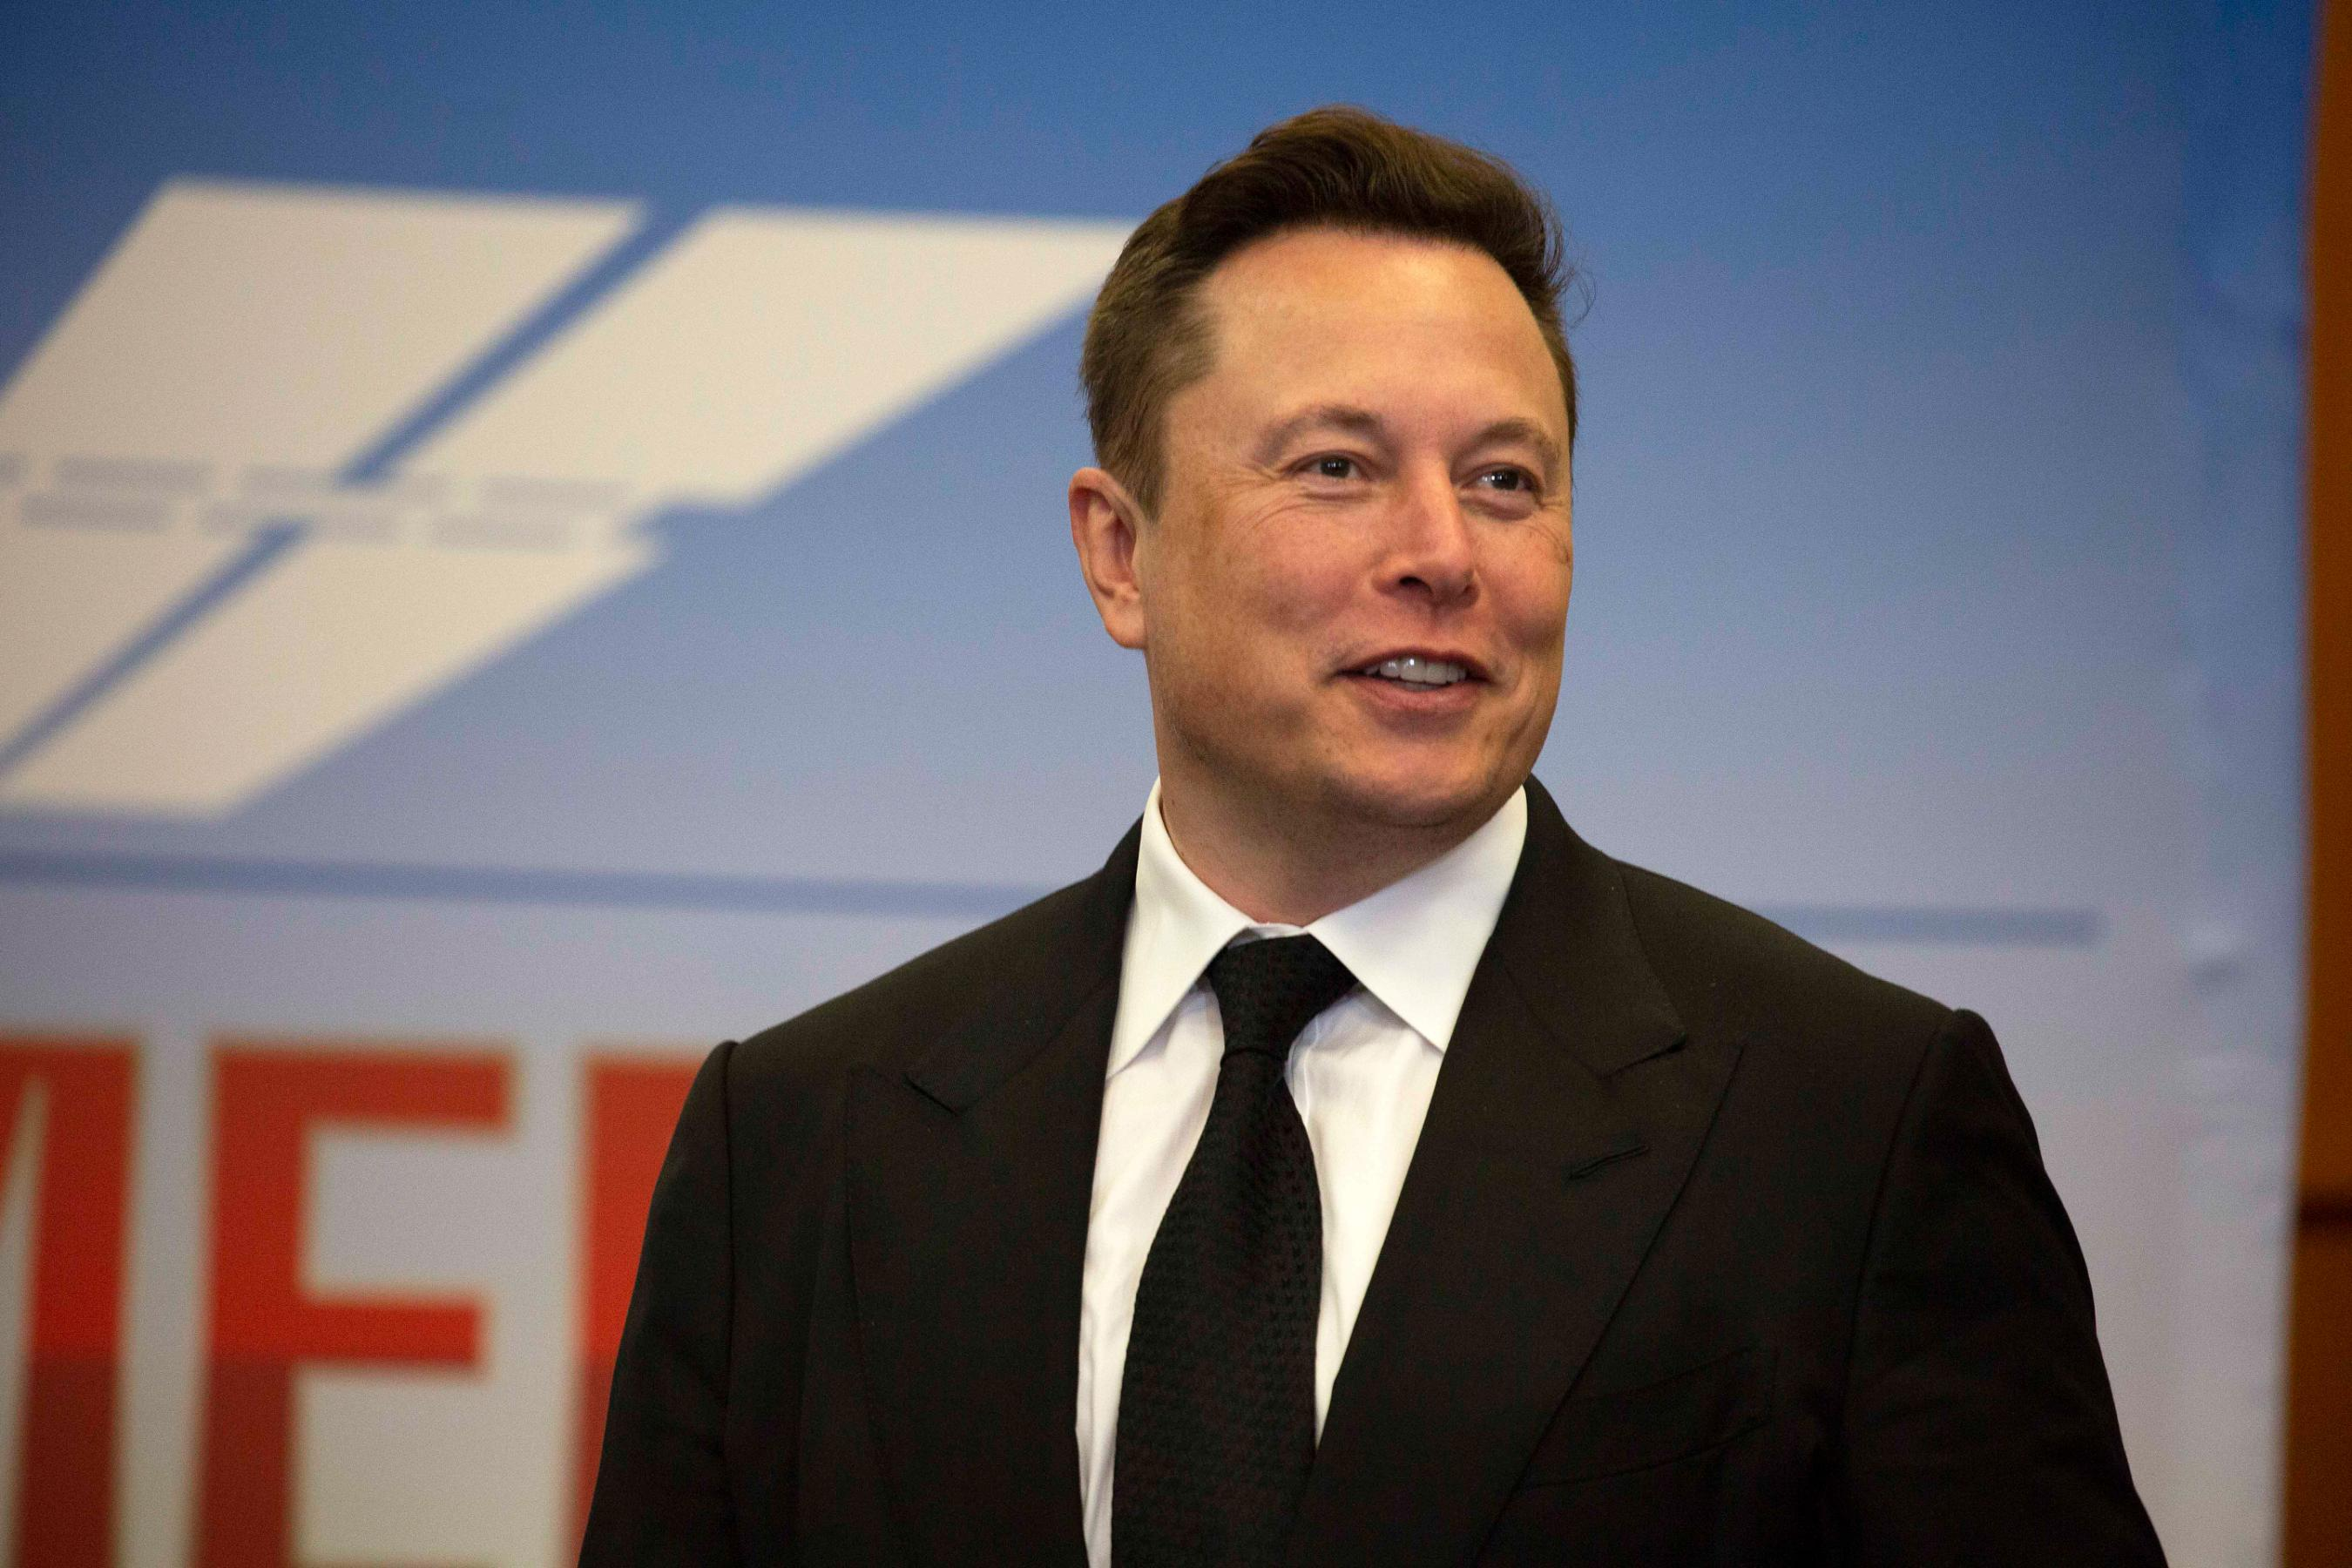 Elon Musk about to get another $1.8 billion payday from Tesla